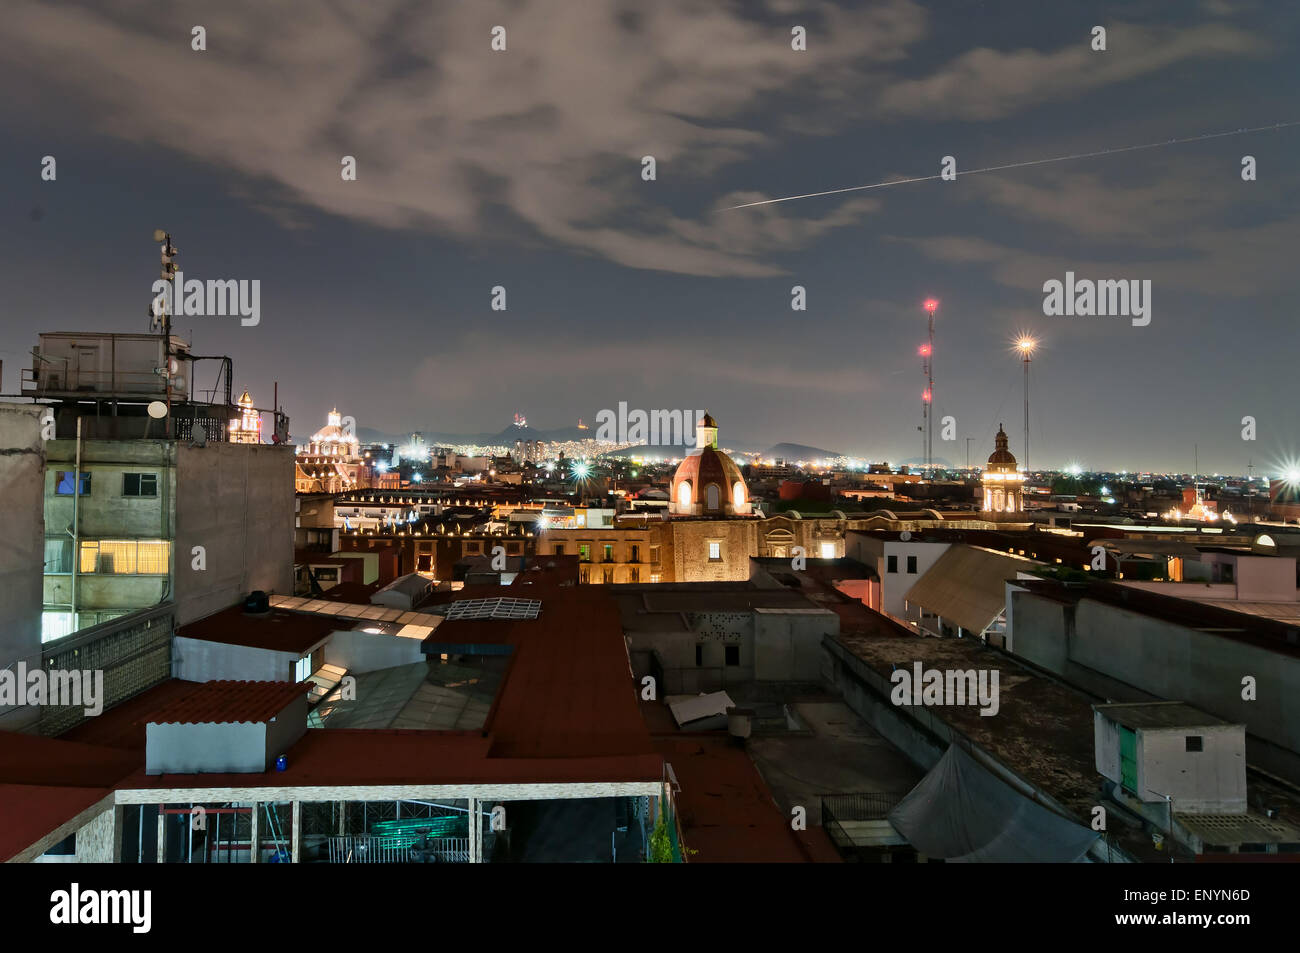 Mexico City, Mexico - April 29, 2014: night view of skyline with brightly lit suburban barrios in the background - Stock Image